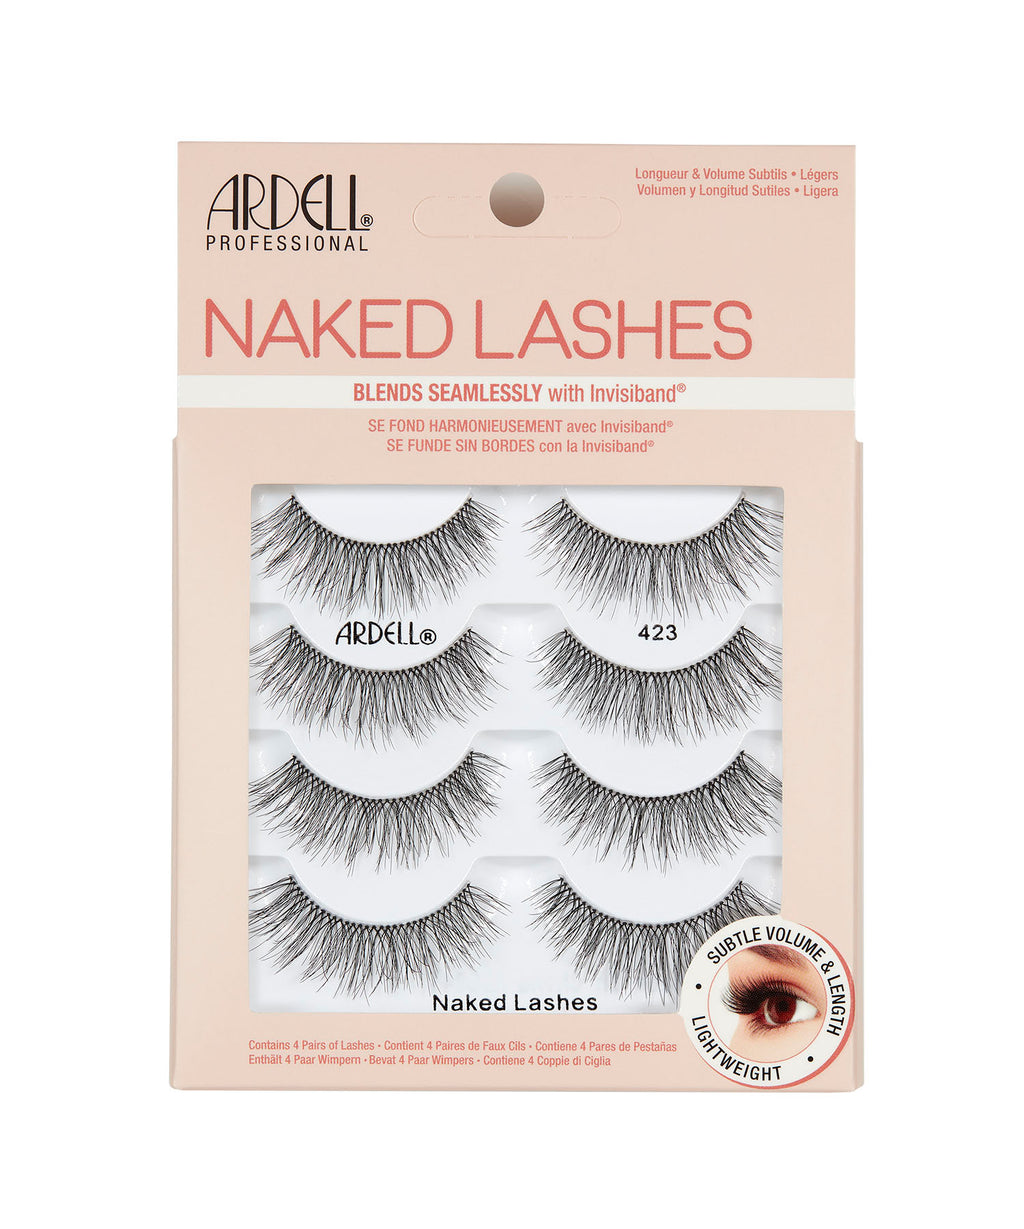 ARDELL Naked Lashes Multipack - 423 | HODIVA SHOP